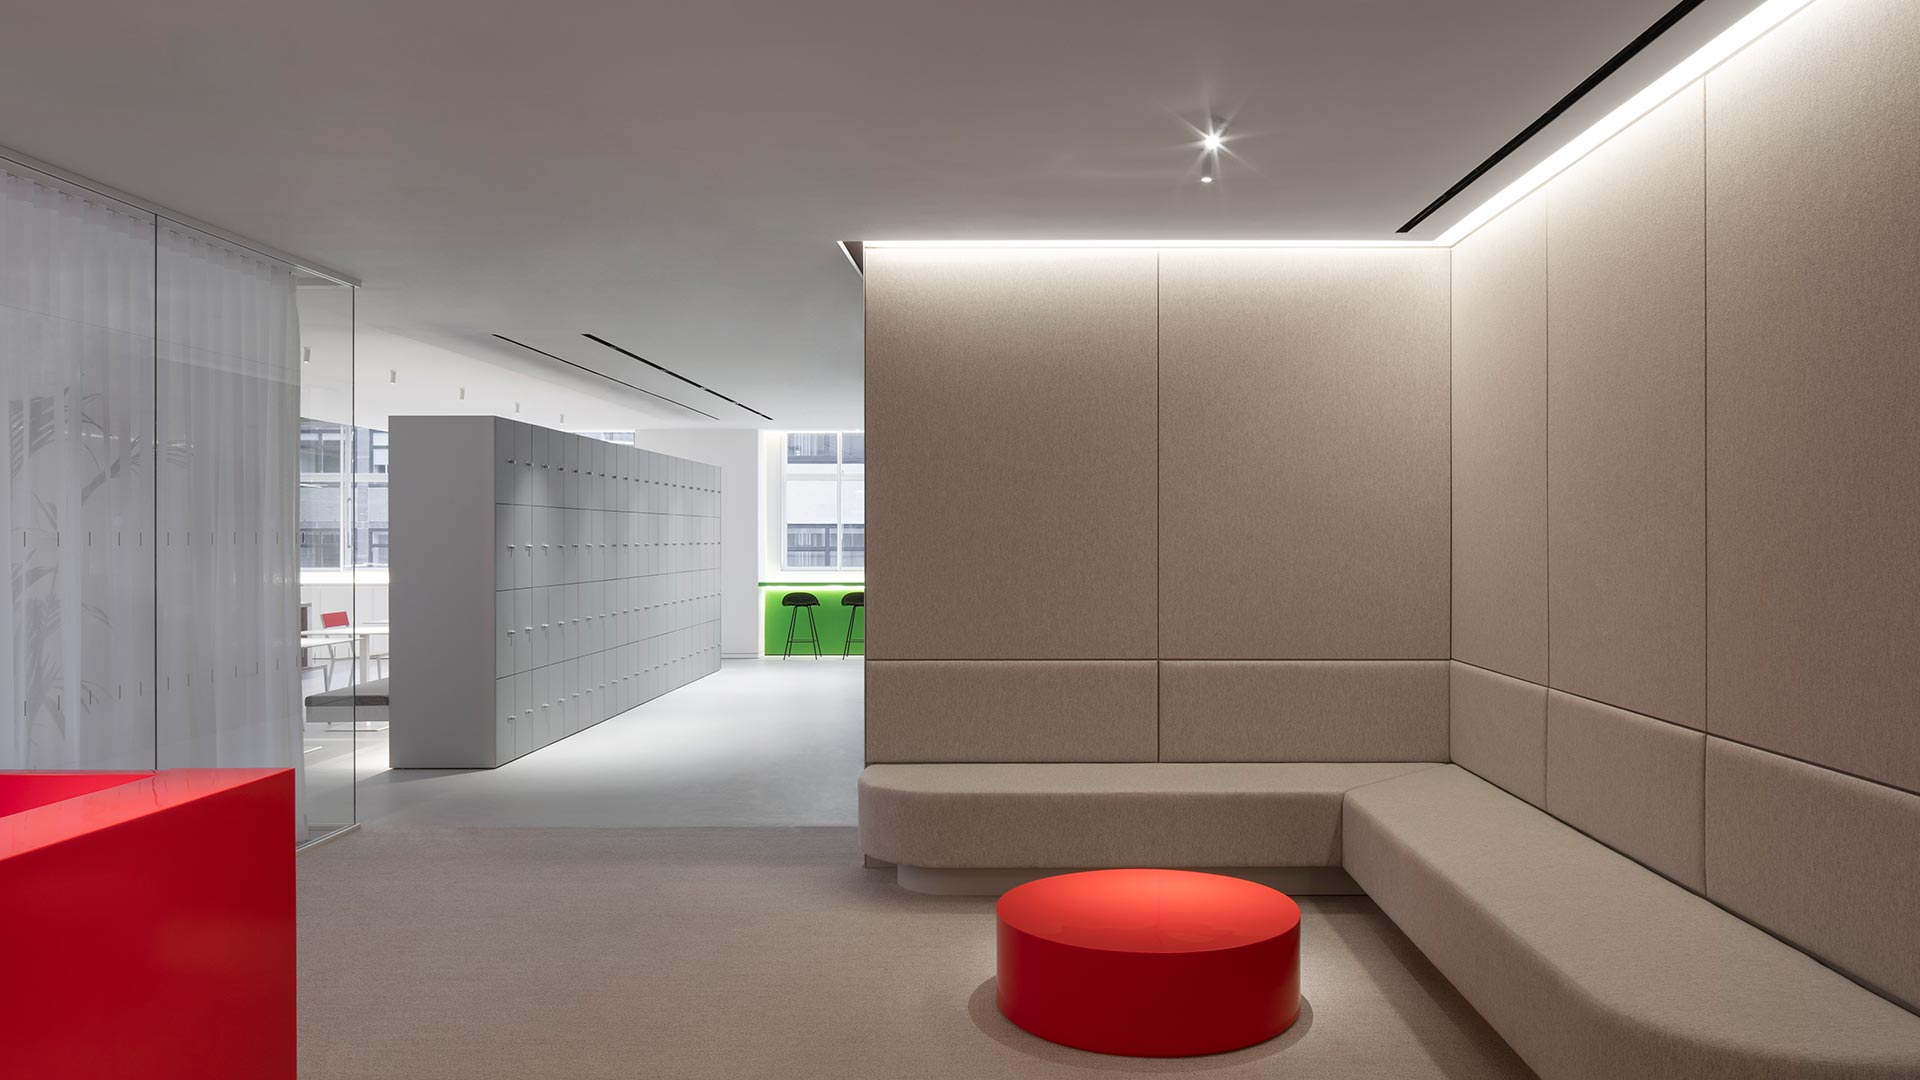 Architectural Lighting Design Modern Stylish Office Minimalist Reception Grey Fabric Walls Feature Red Furniture Cove Illumination Consultants Nulty